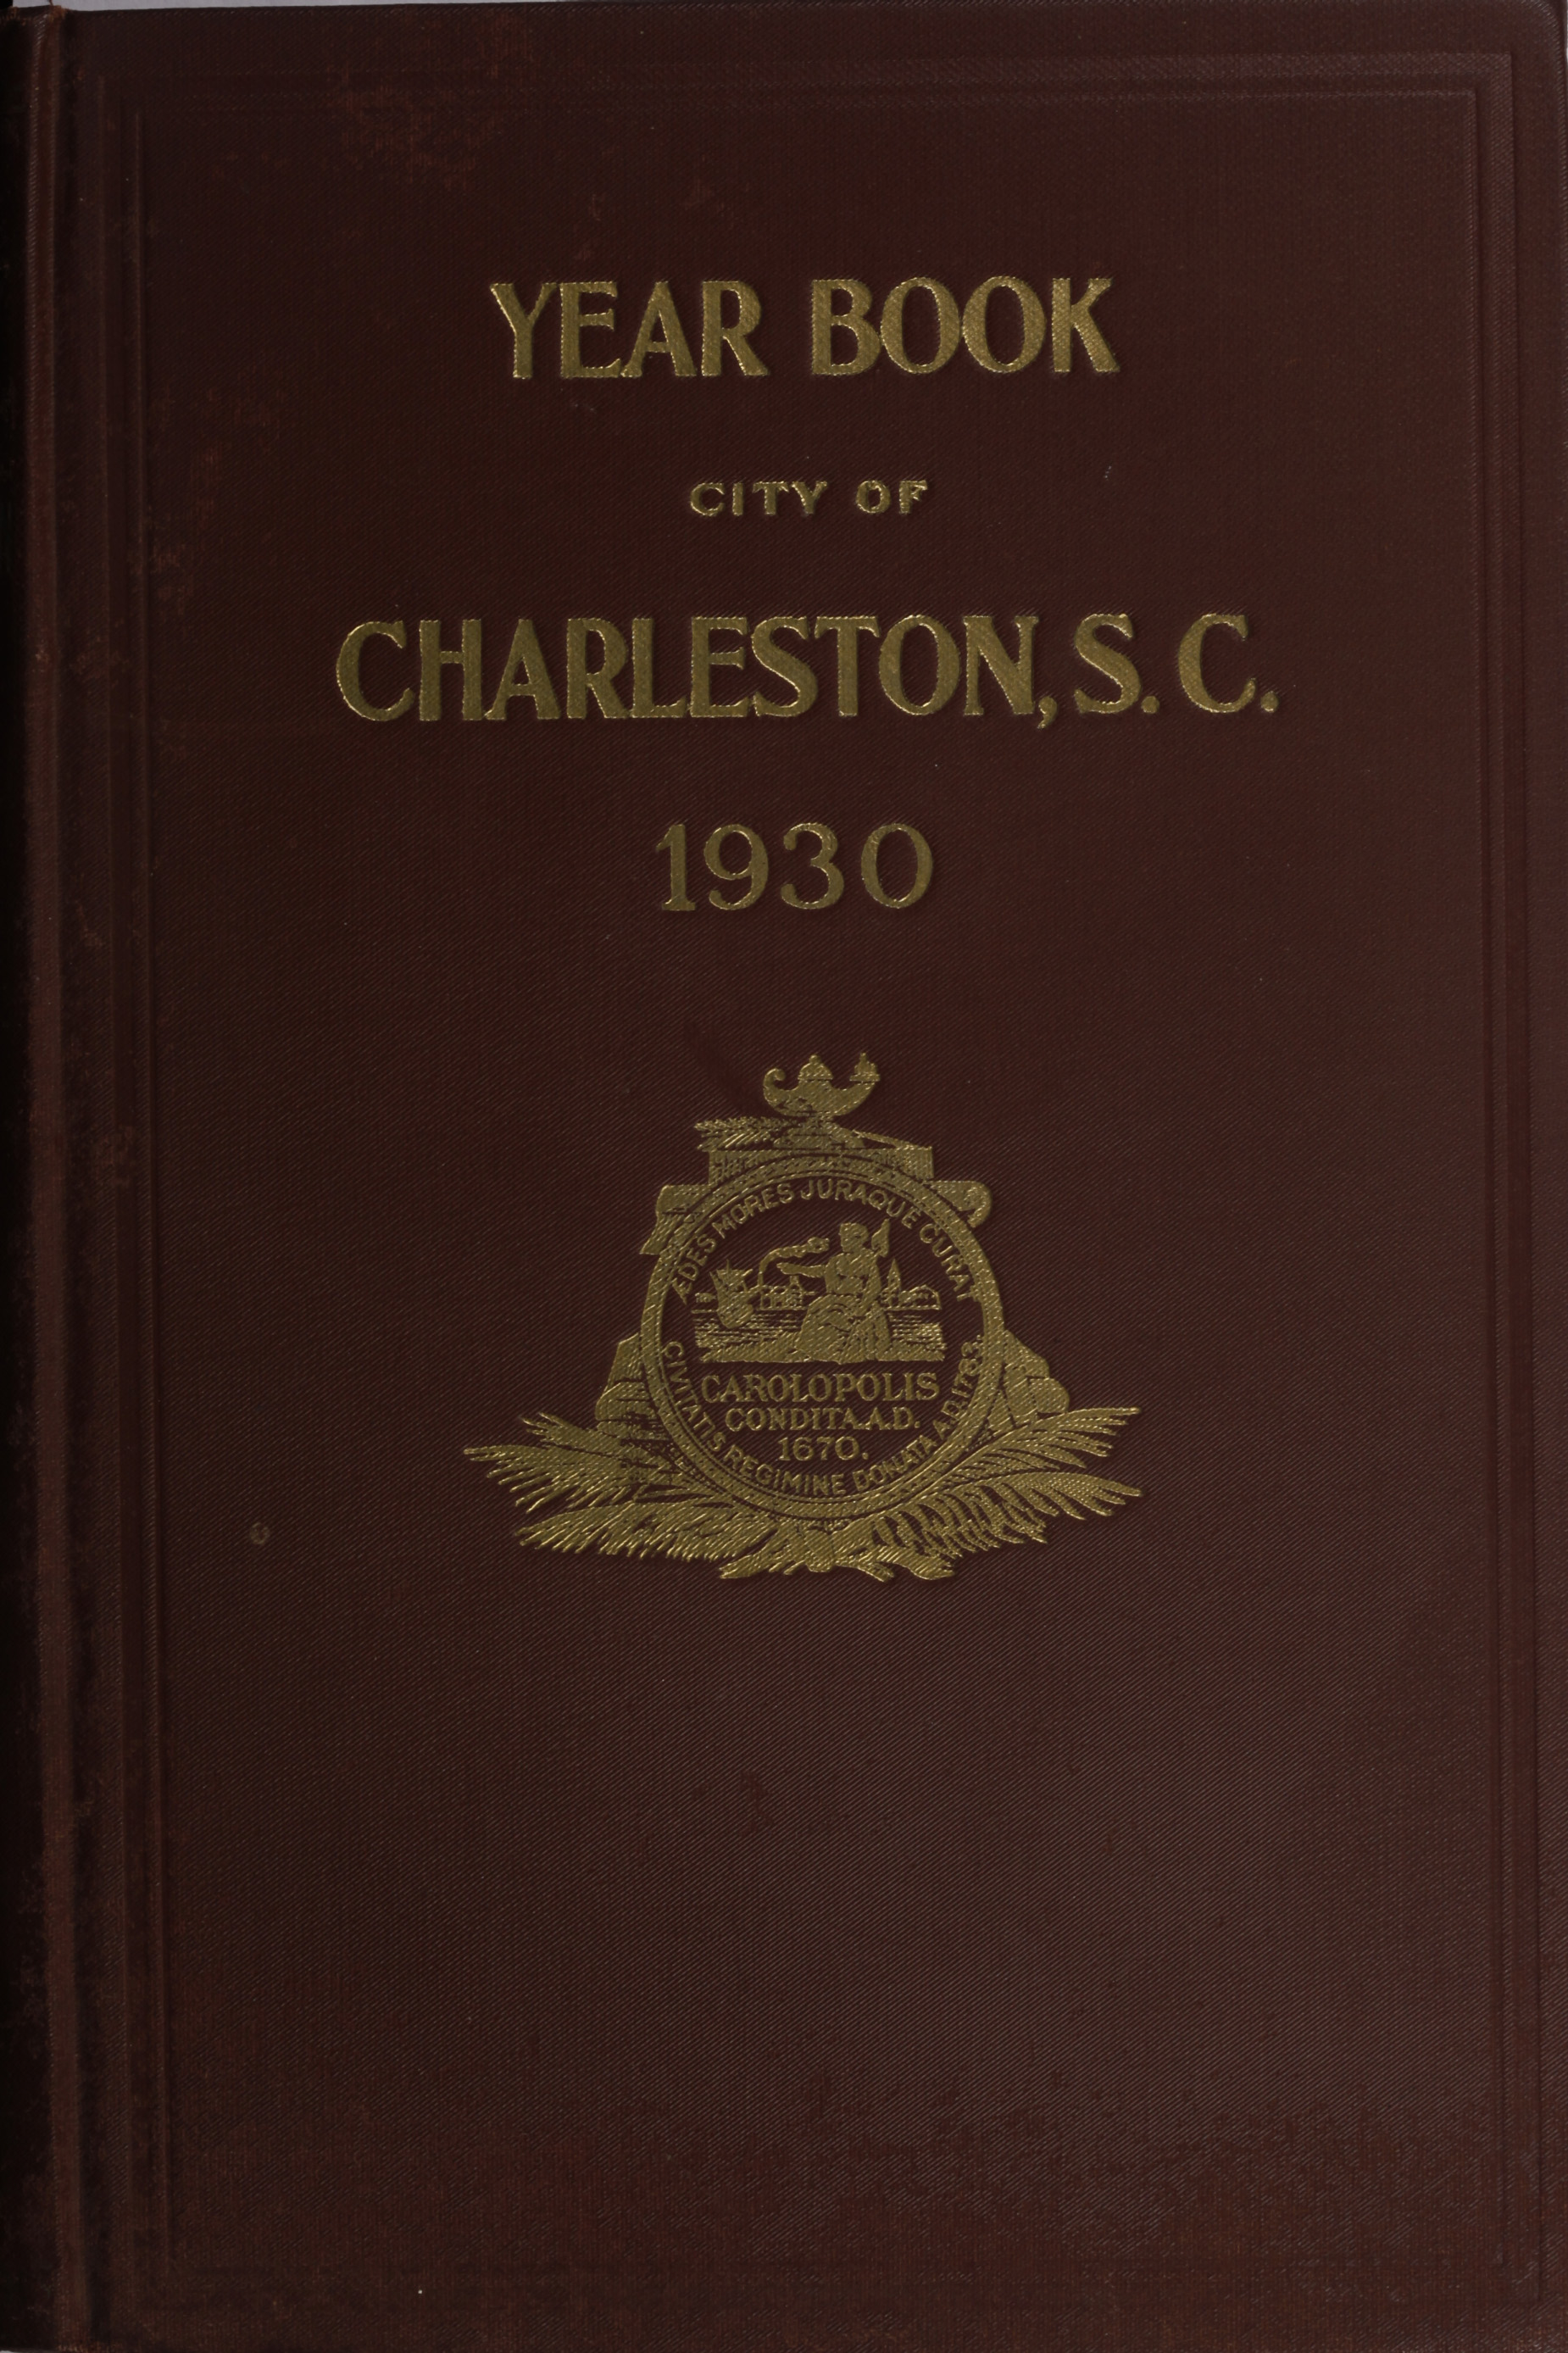 Charleston Yearbook, 1930, cover